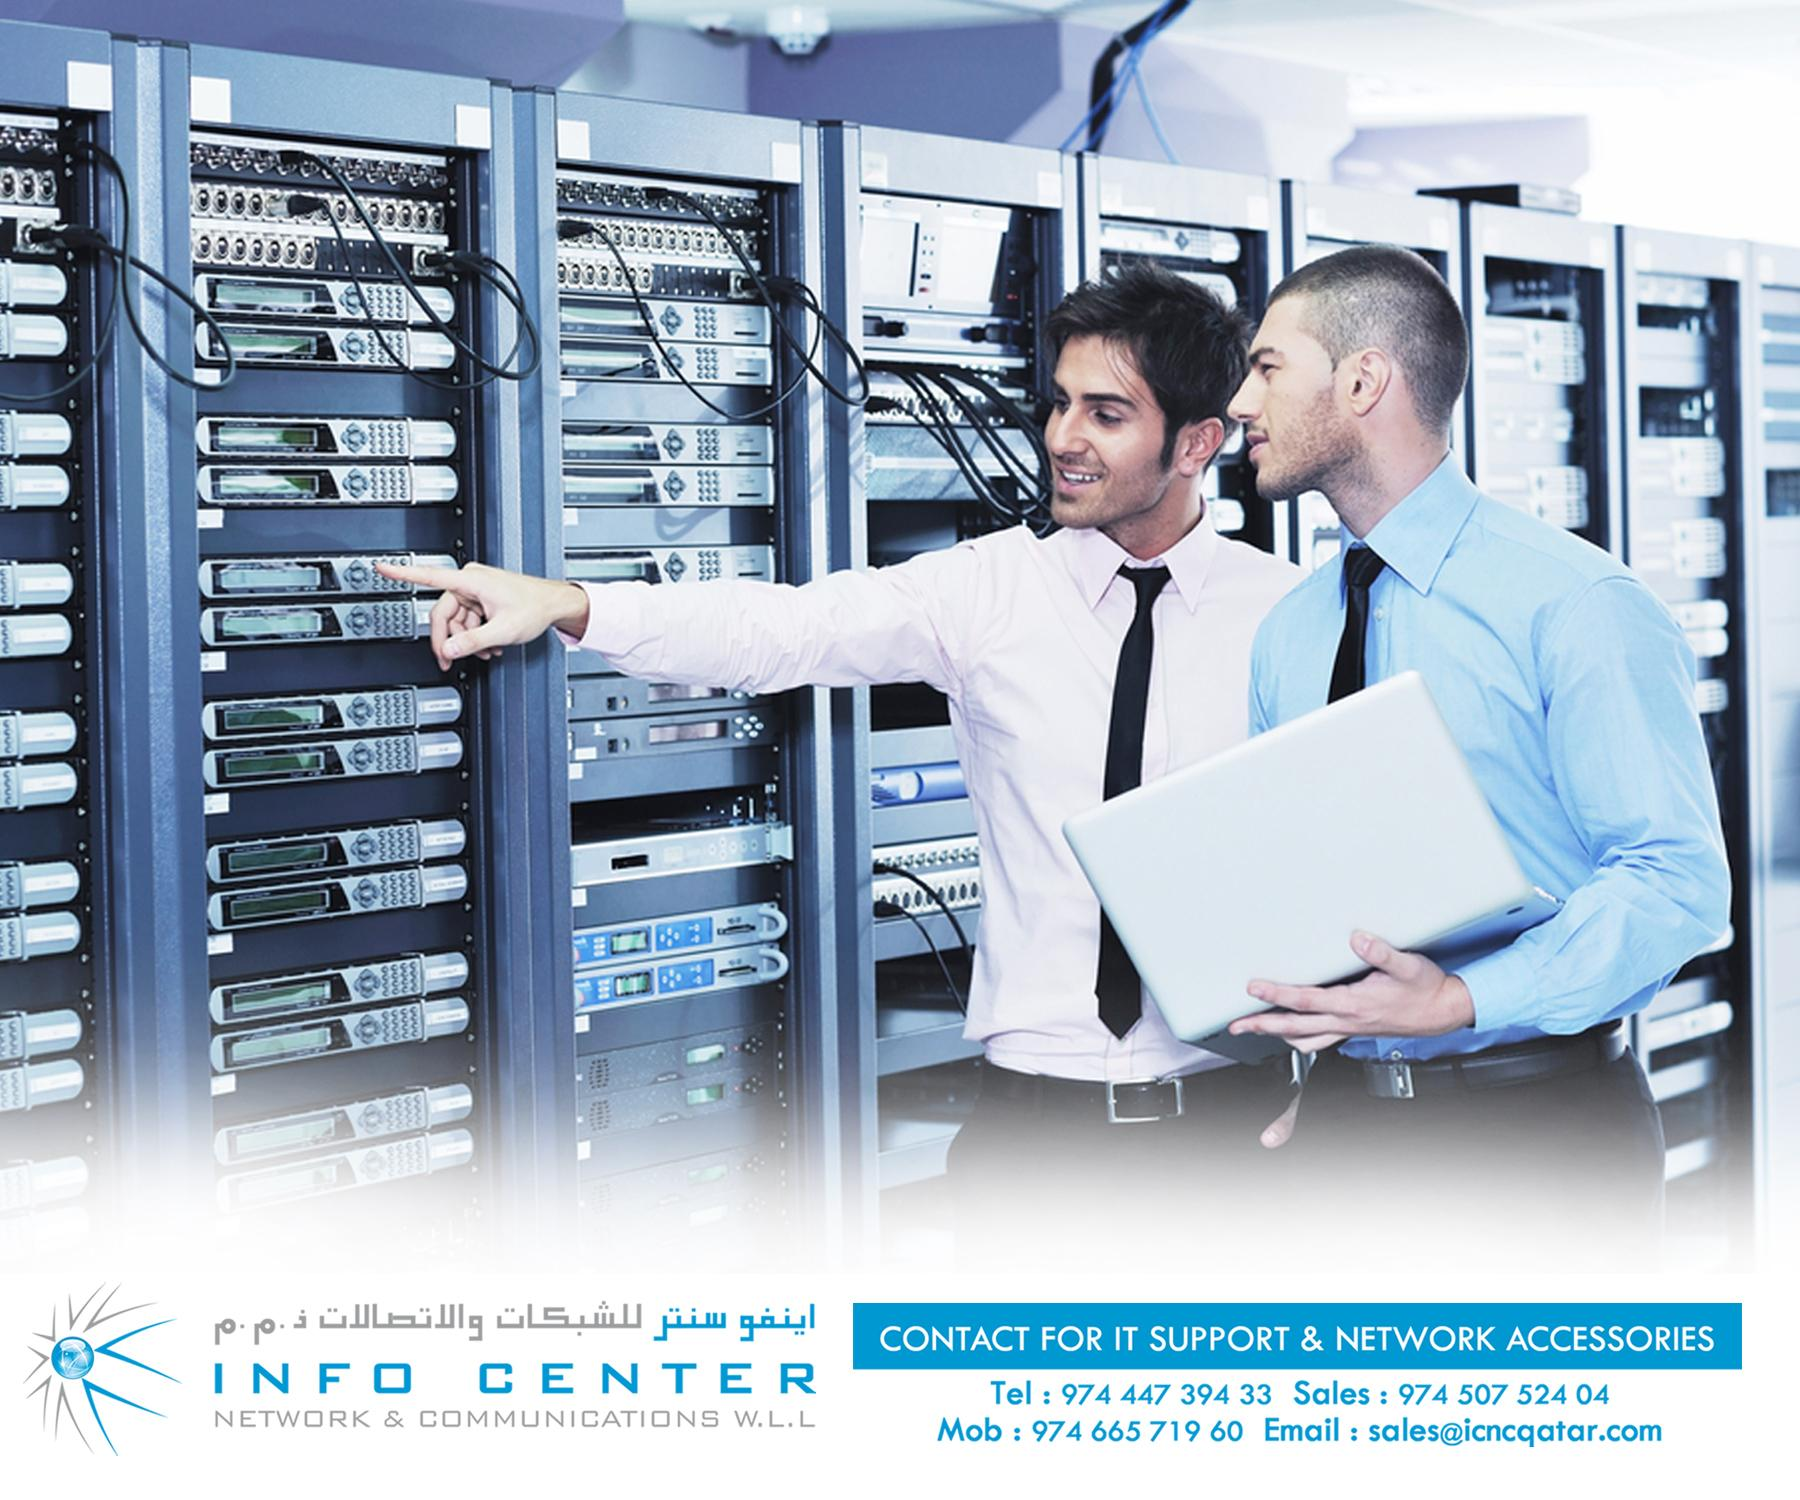 TOTAL IT SOLUTION AND SUPPORT